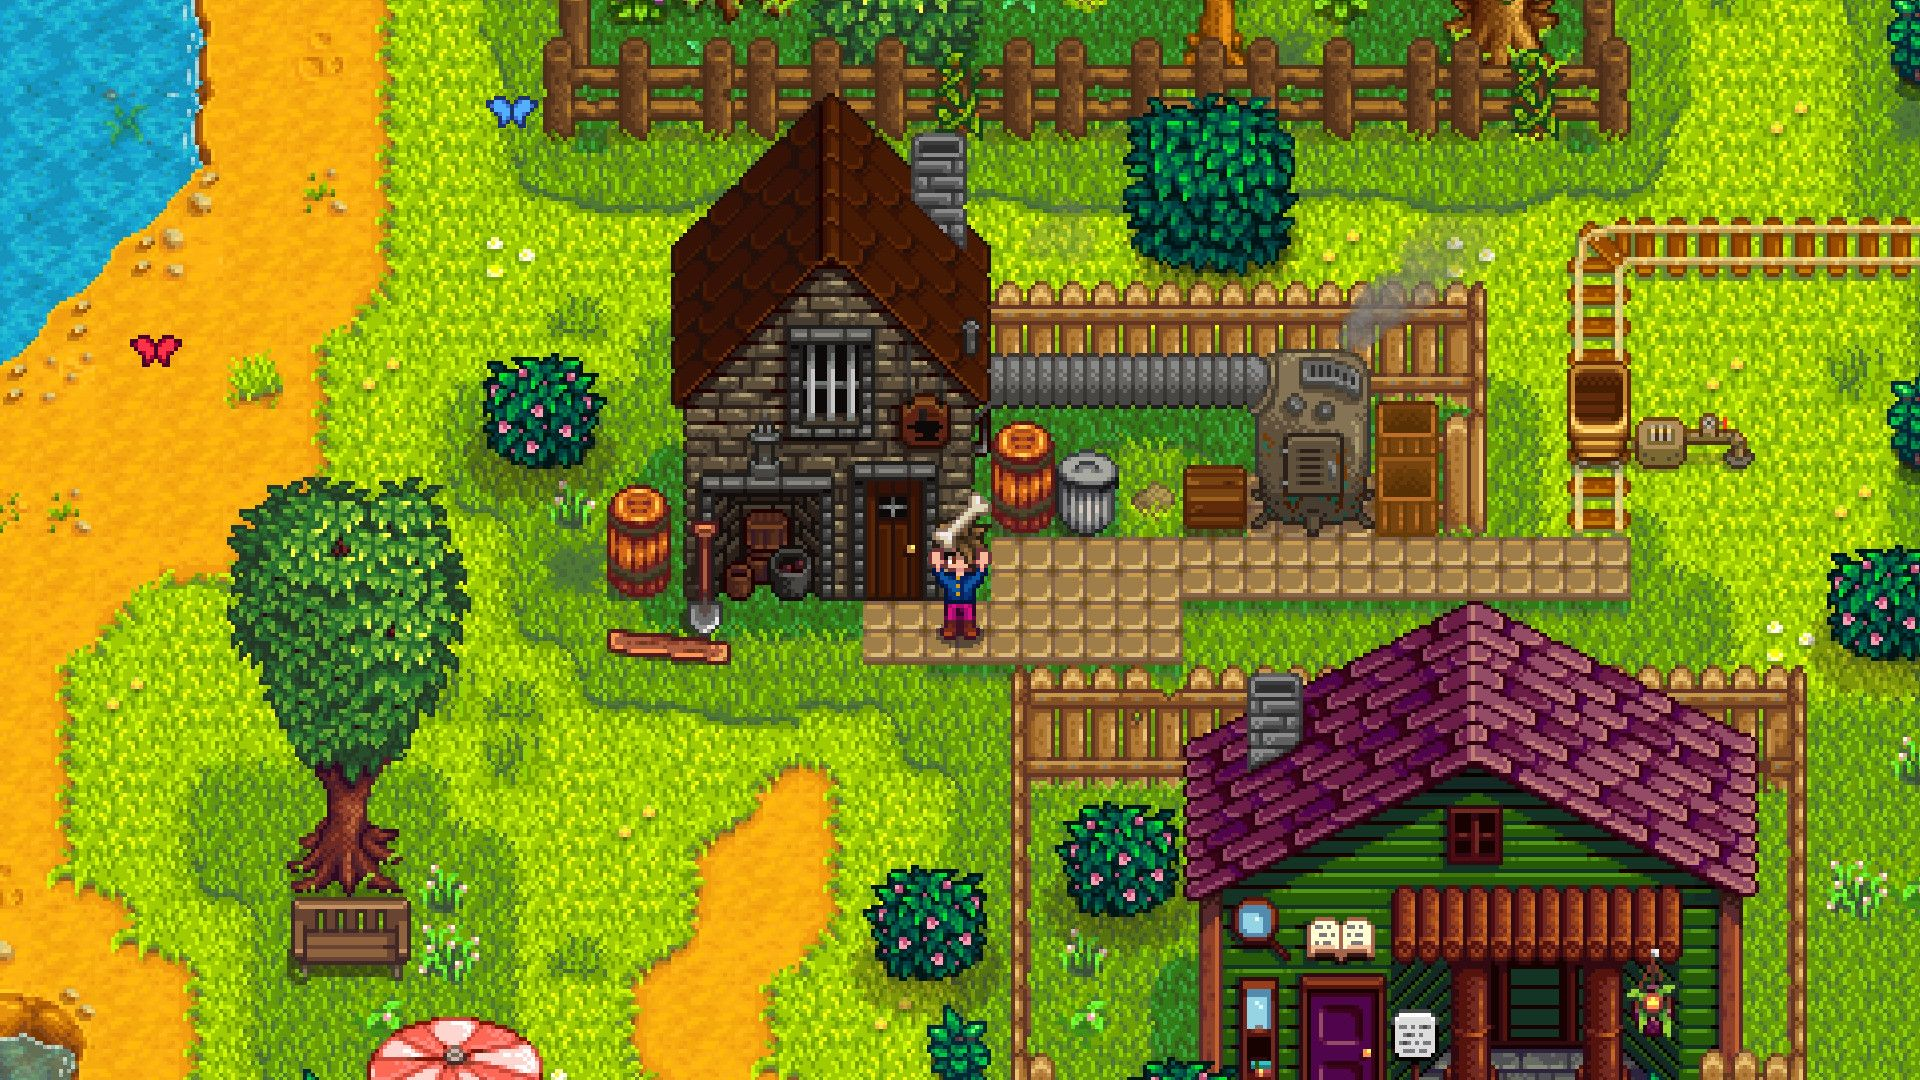 Two unannounced games will expand Stardew Valley's cinematic universe screenshot